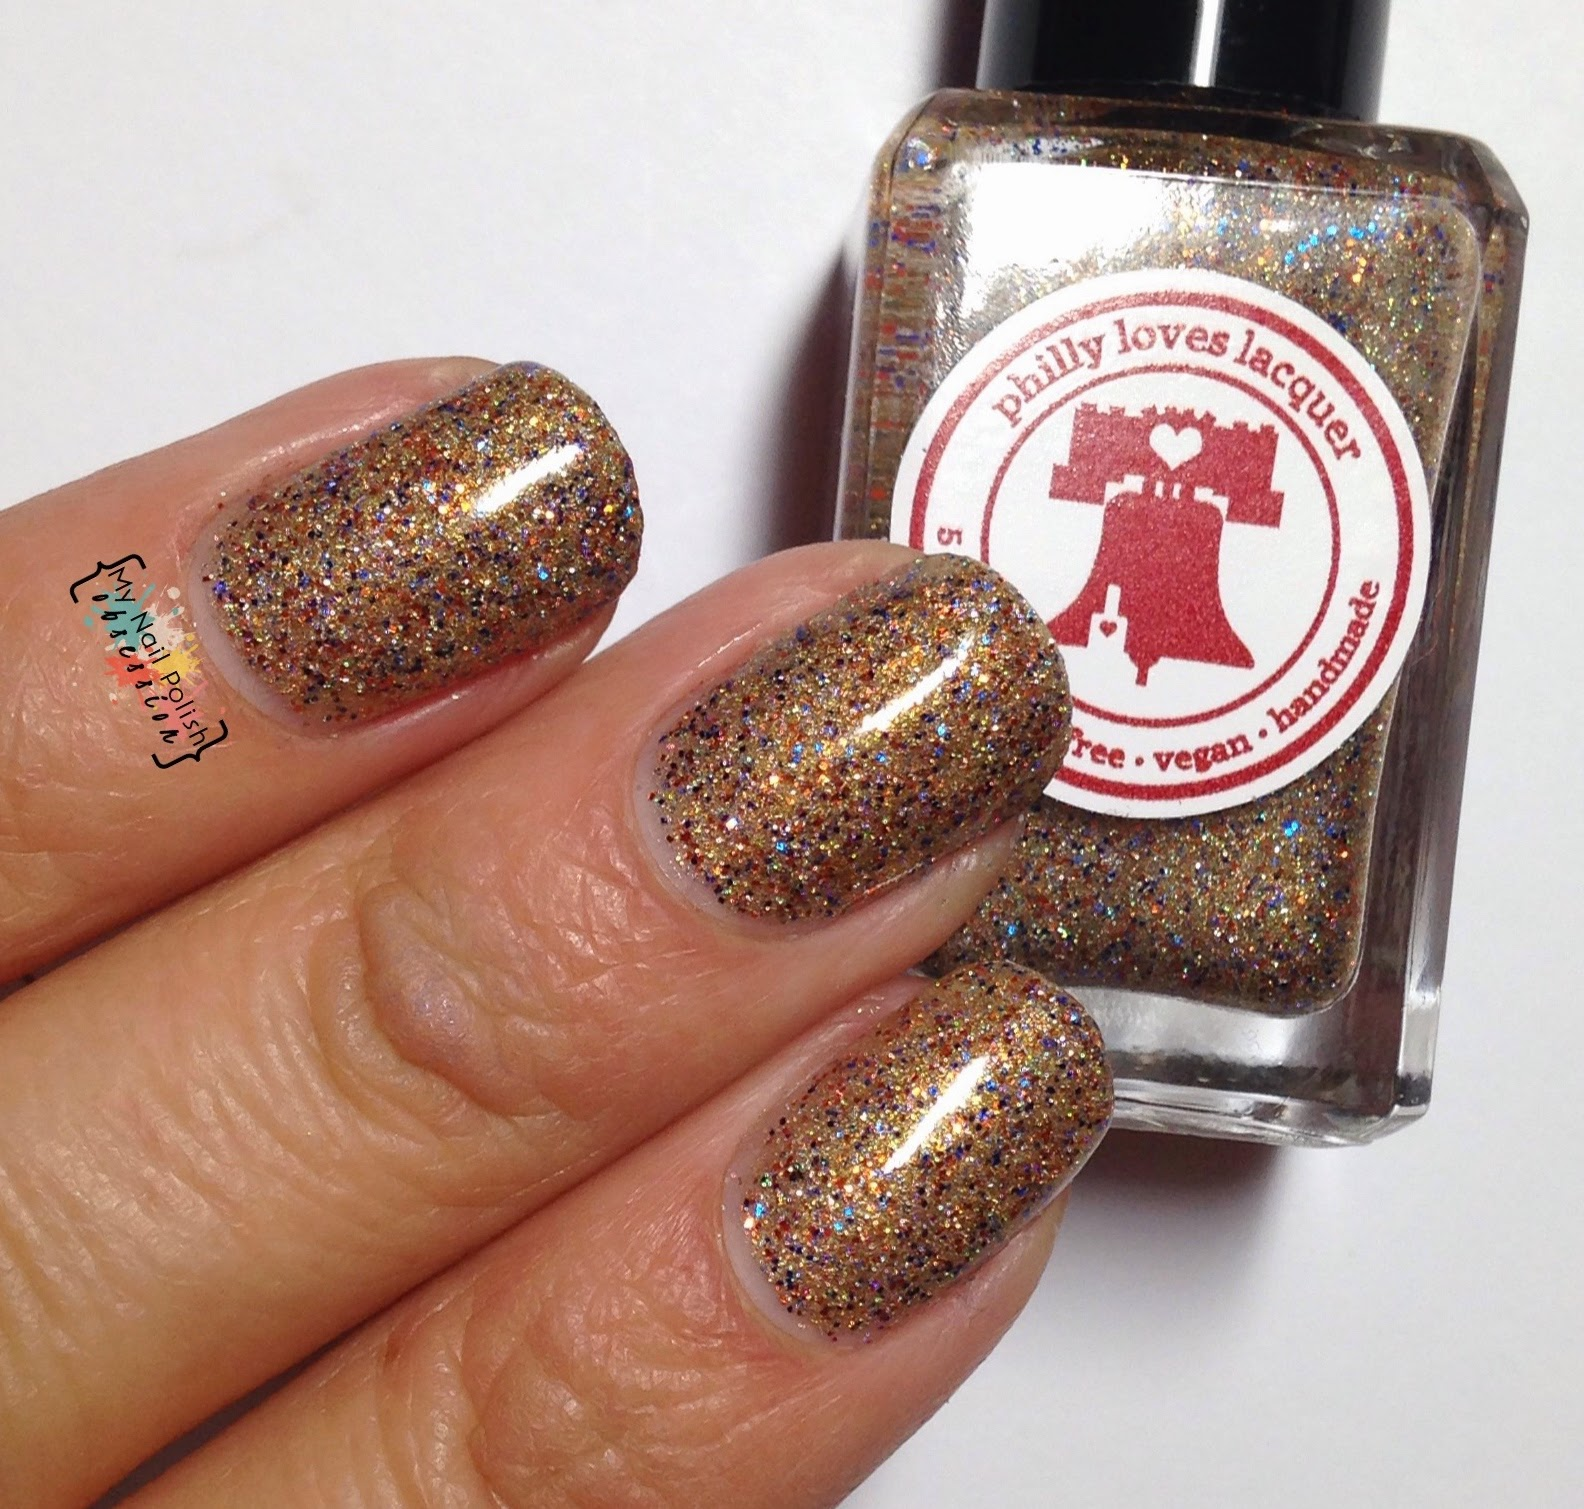 Philly Loves Lacquer SBP #110